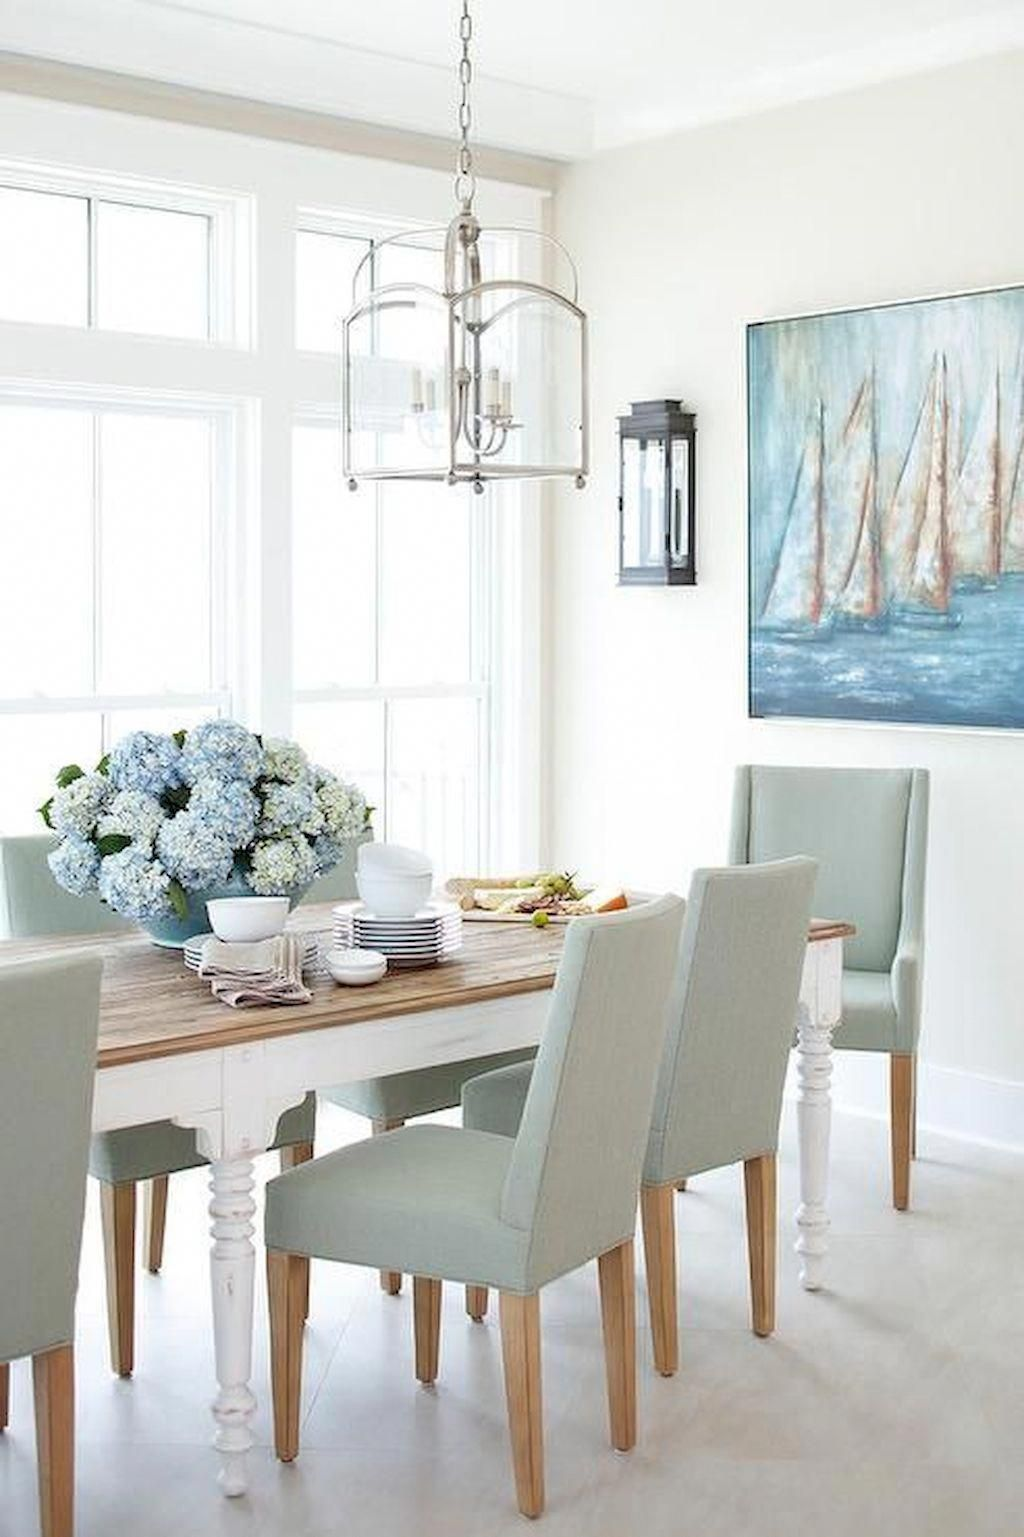 Gorgeous 70 cottage dining room designs with everlasting style the cottage dining room designs are mostly inspired by the concept of beach house